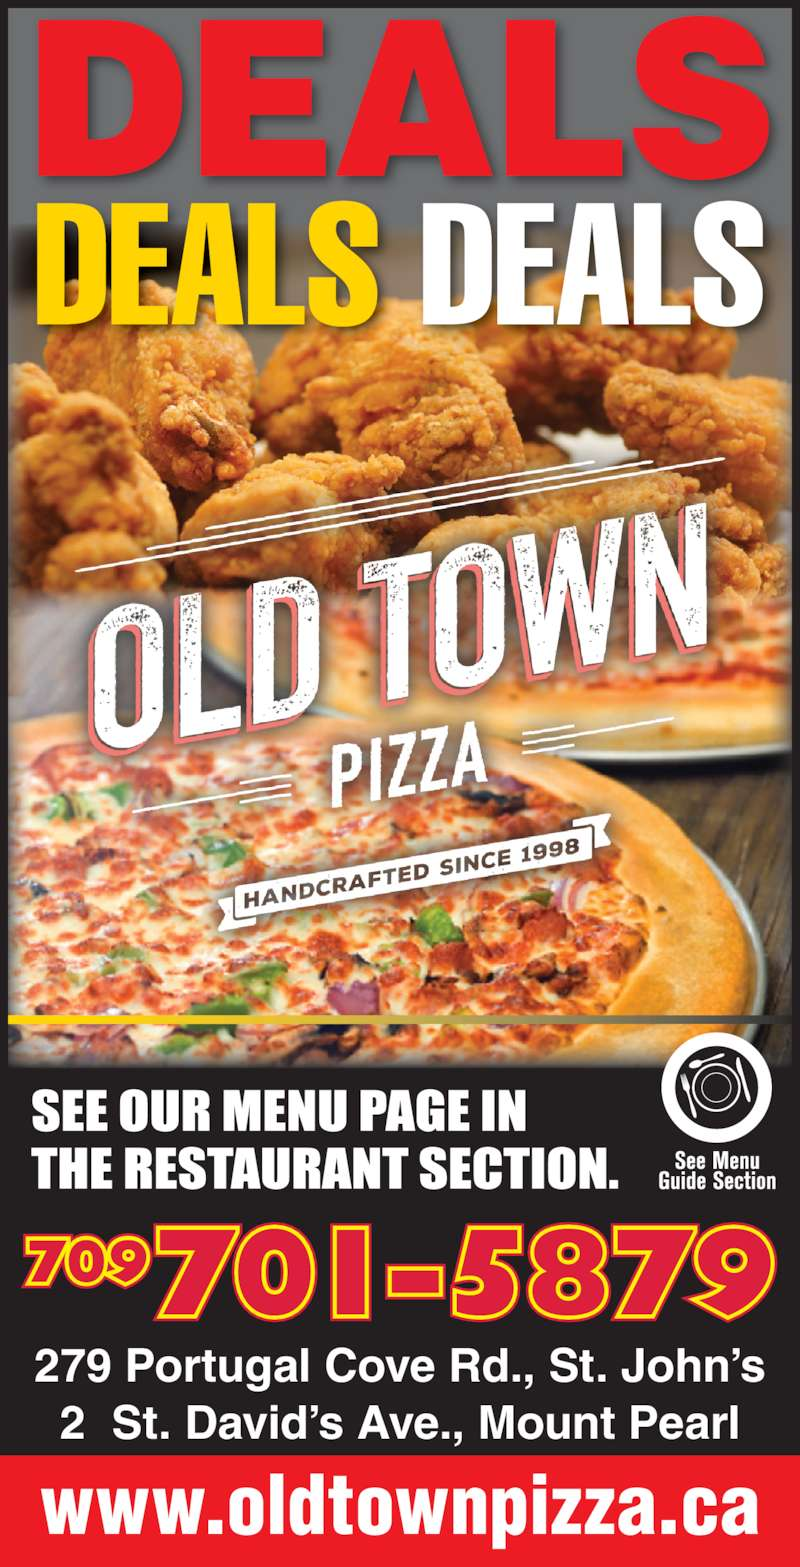 Old Town Pizzeria (709-738-1234) - Annonce illustrée======= - 279 Portugal Cove Rd., St. John's 2  St. David's Ave., Mount Pearl DEALS DEALS DEALS www.oldtownpizza.ca 709701-5879